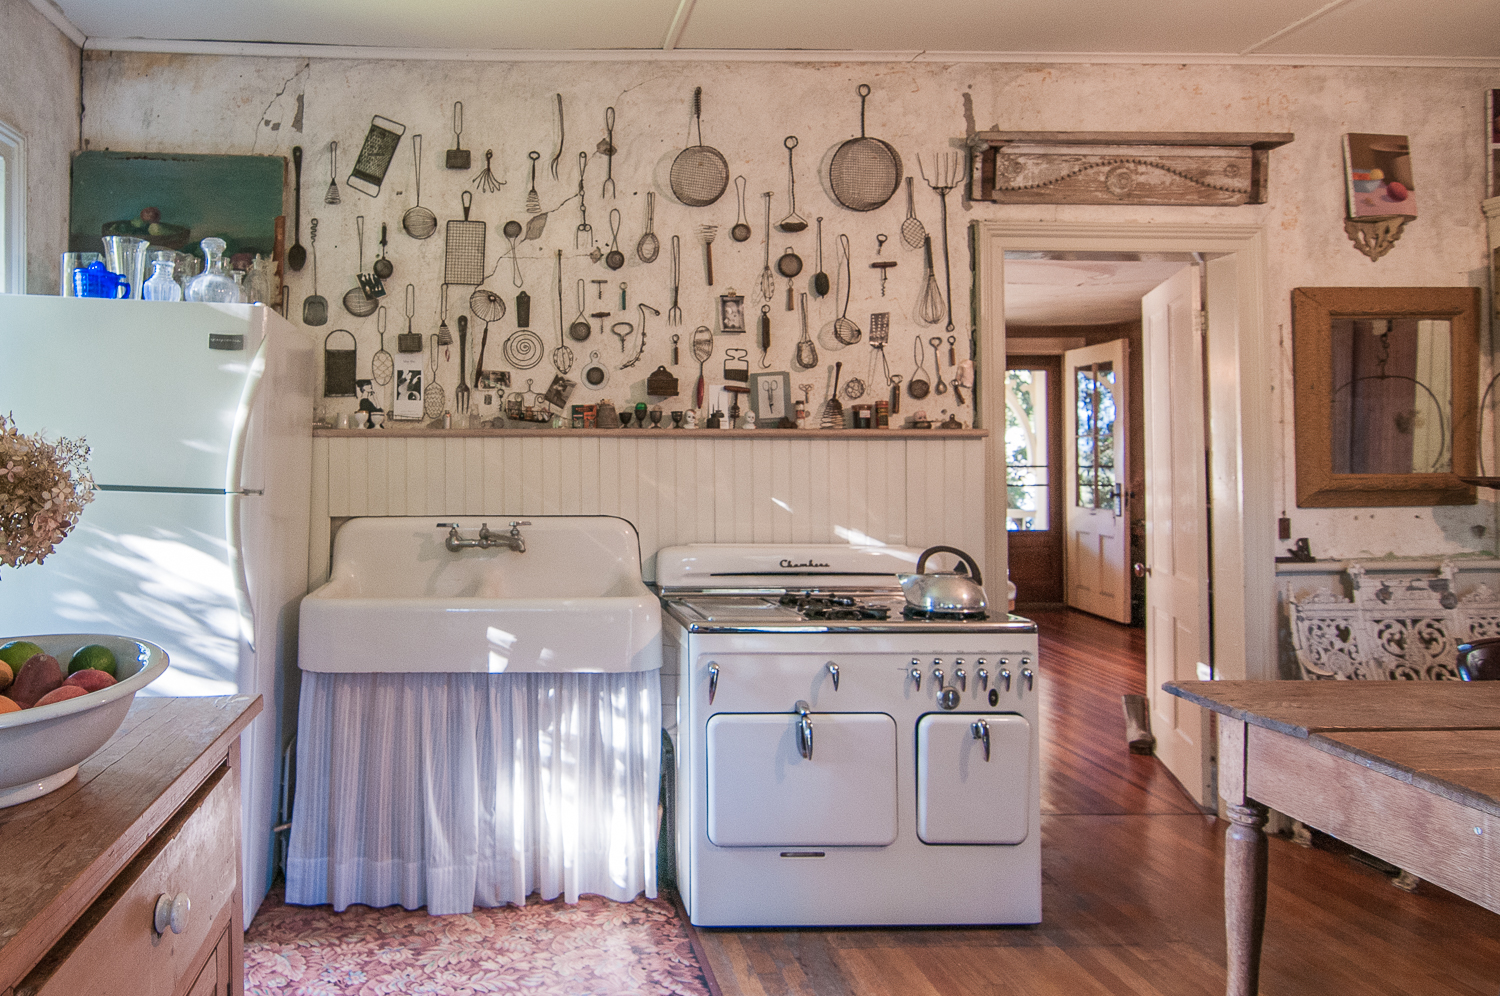 1077-RiverRd-Barrytown-NY_Kitchen-Chambers-Stove.jpg